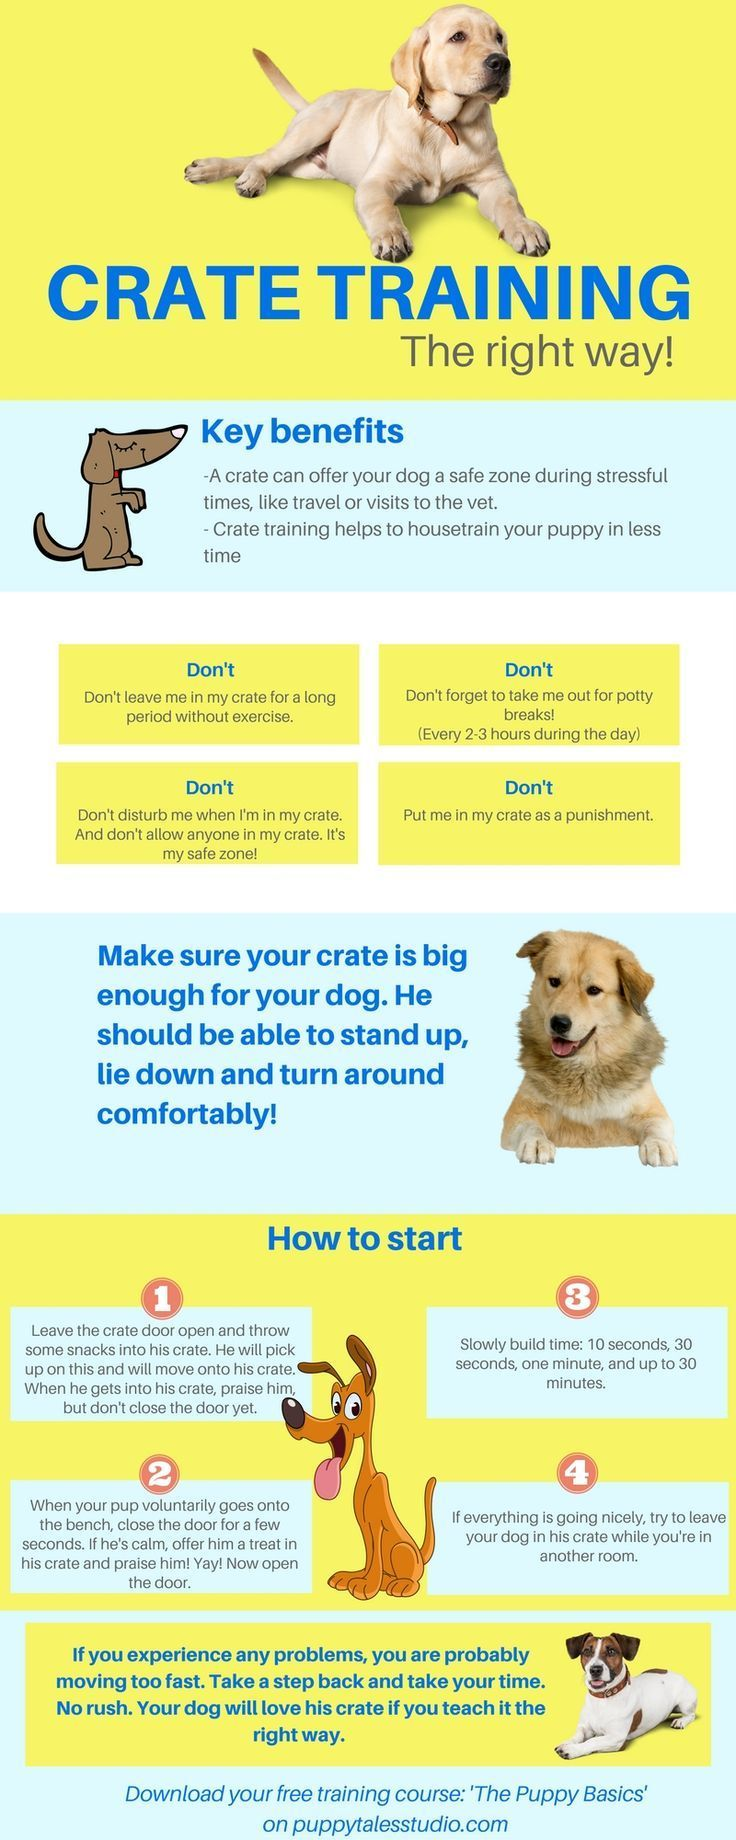 Pretentious Kaufmanns Puppy Training Howto Train Dog Training Crate Right Pug Training Pupy Training Treats Pupy Training Treats Dog Training Crate Right Teach Your Dog To Be bark post Dog Training Treats